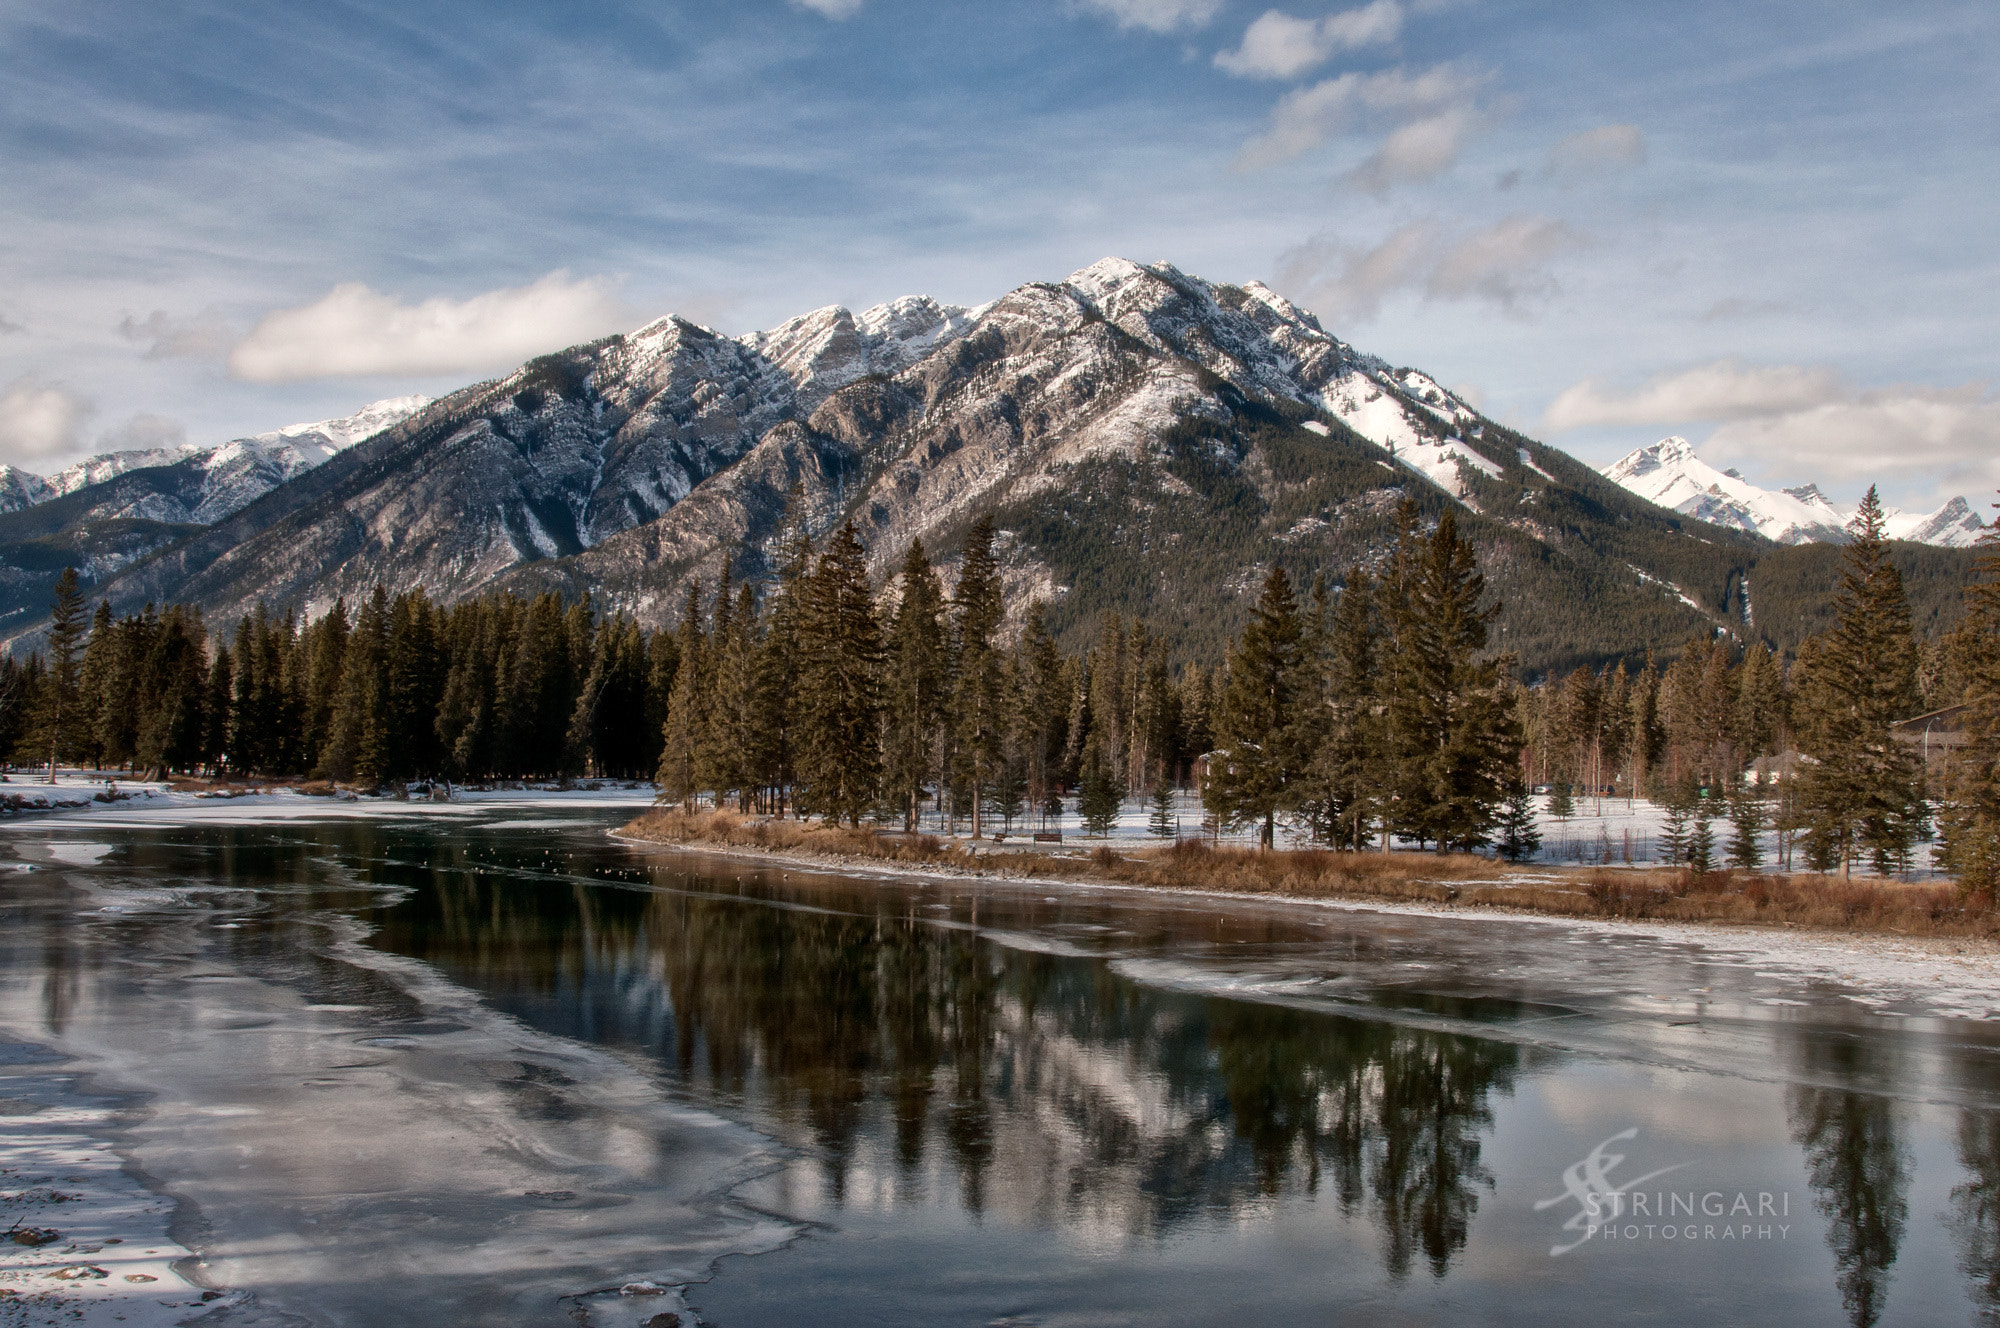 Photograph Bow River by Carla Stringari Pudler on 500px